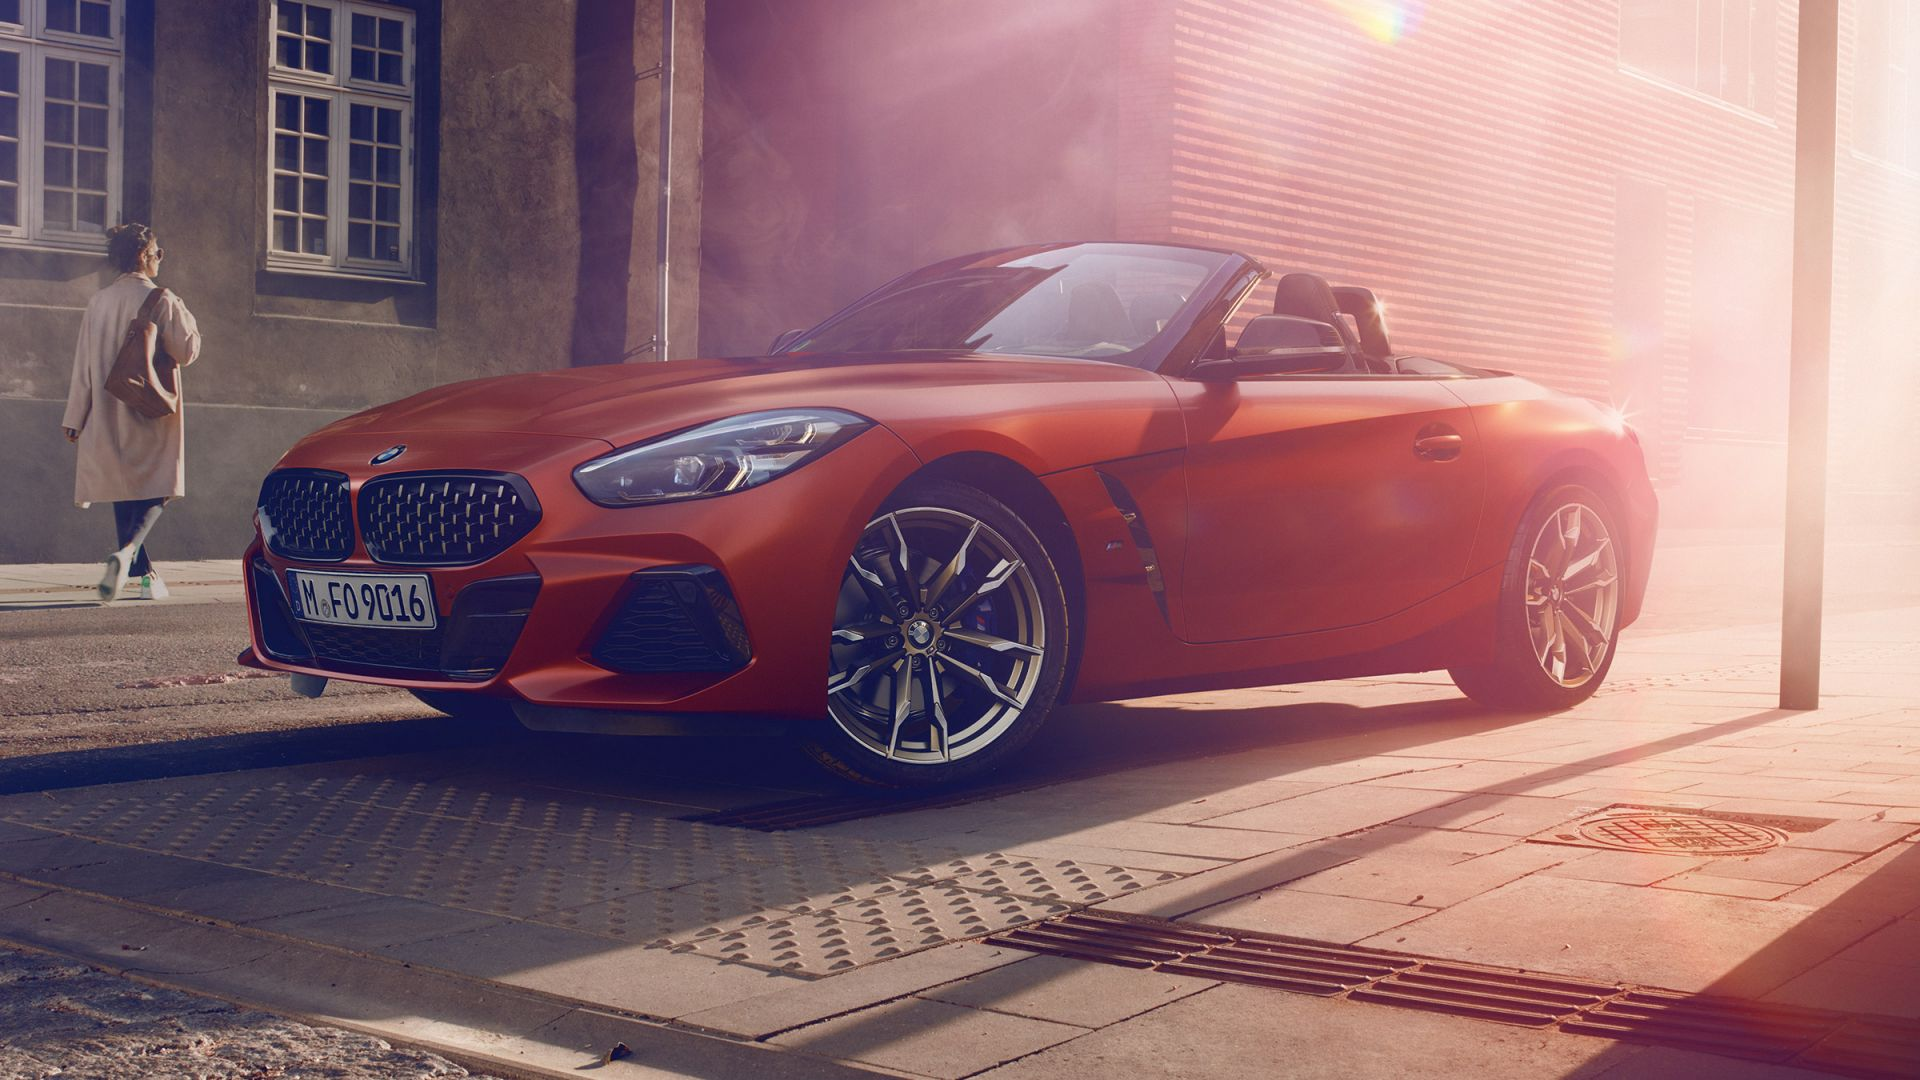 BMW Z4 M40i First Edition, 2019 Cars, sports car, HD (horizontal)